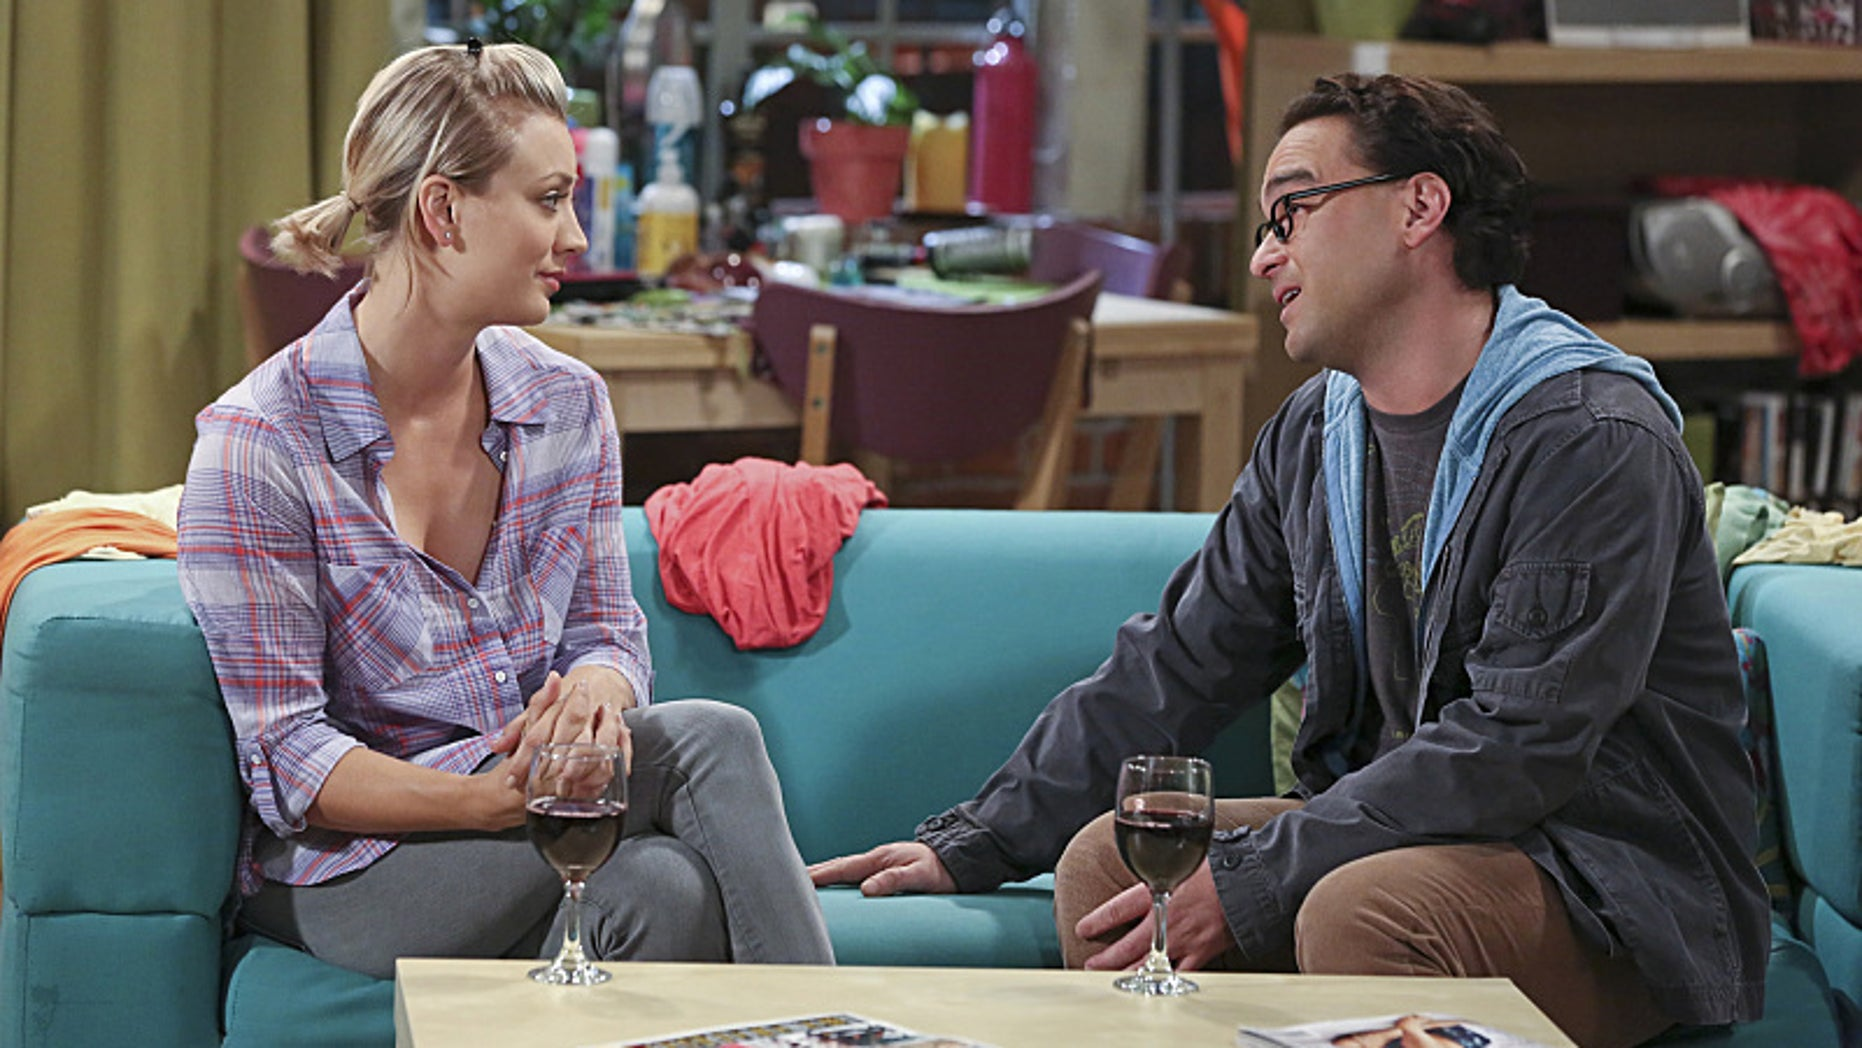 """The Separation Oscillation"" -- Leonard (Johnny Galecki, right) confronts the woman he kissed on the North Sea in an attempt to set Penny's (Kaley Cuoco-Sweeting, left) mind at ease, on THE BIG BANG THEORY, Monday, Sept. 28 (8:00-8:31 PM, ET/PT), on the CBS Television Network.  Photo: Michael Yarish/Warner Bros. Entertainment Inc. © 2015 WBEI. All rights reserved."